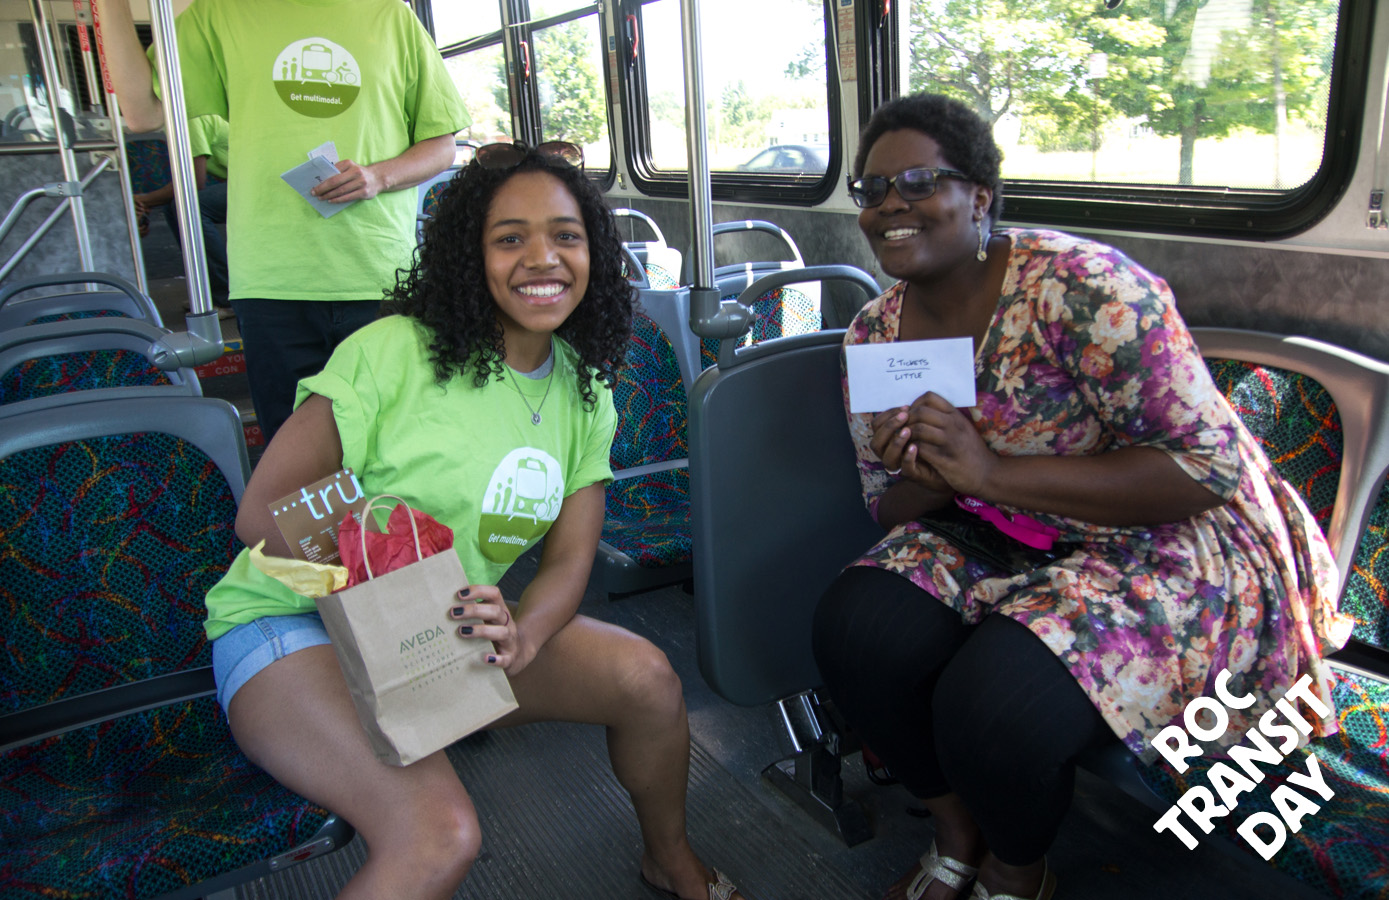 ROC Transit Day is more than just a bus ride... you get to bask in the Rochester funshine.